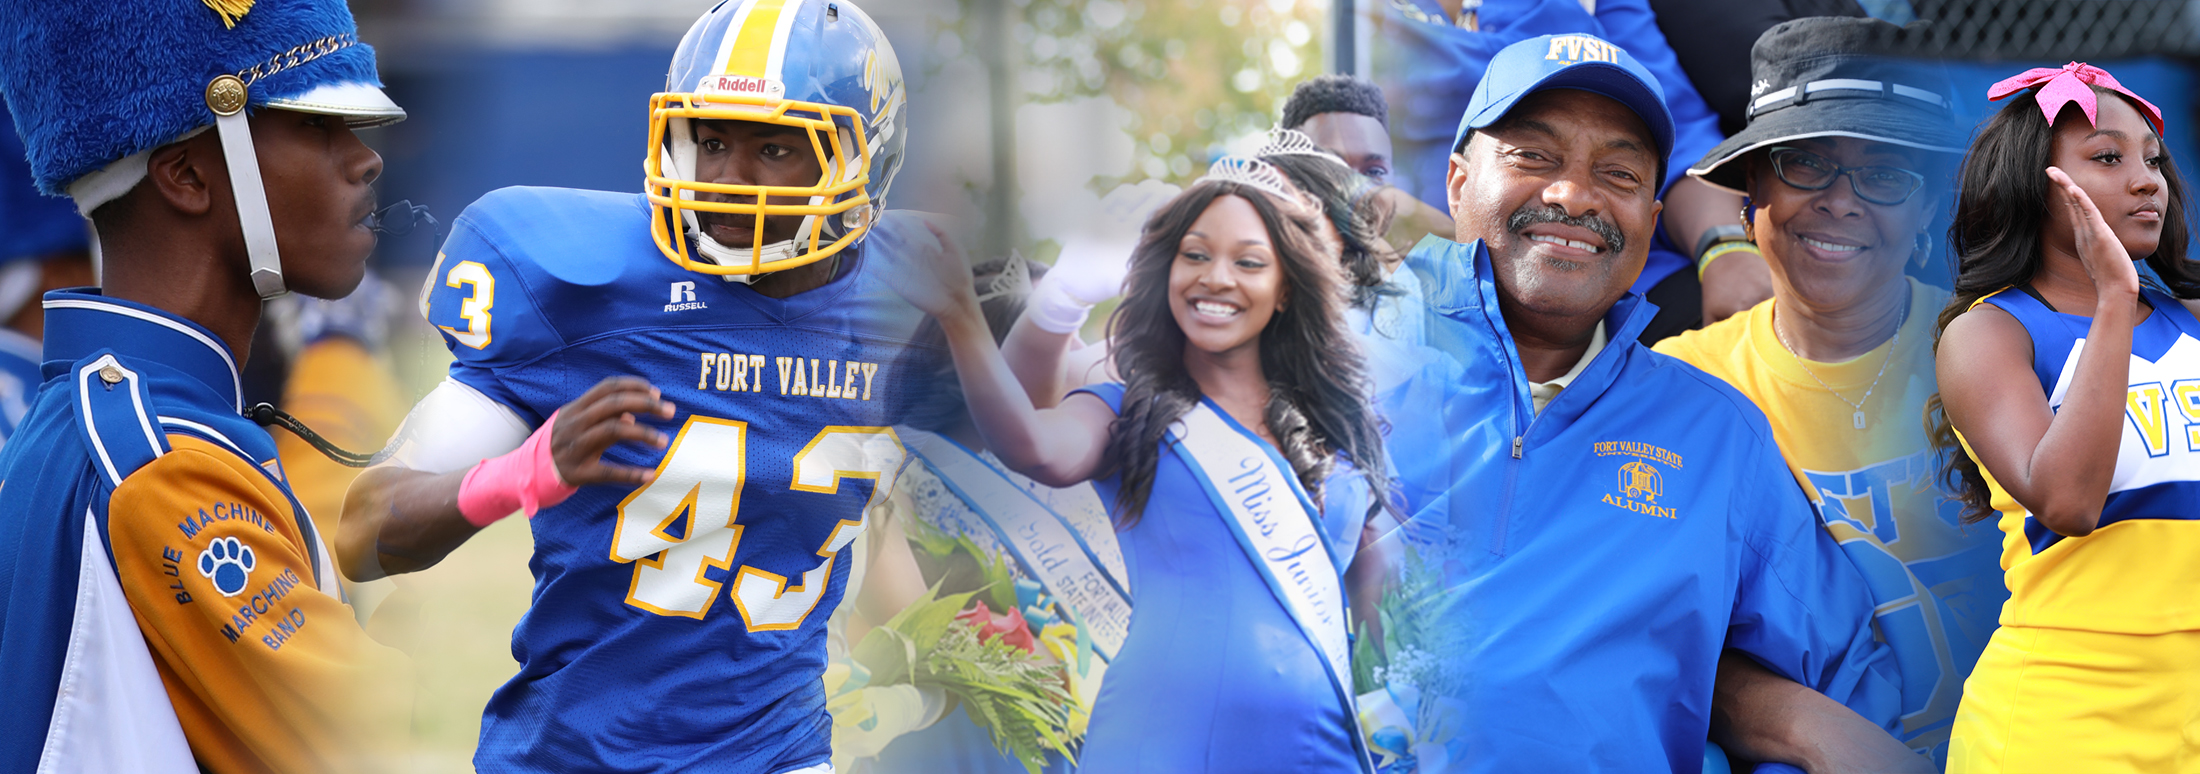 homecoming 2018 fort valley state university